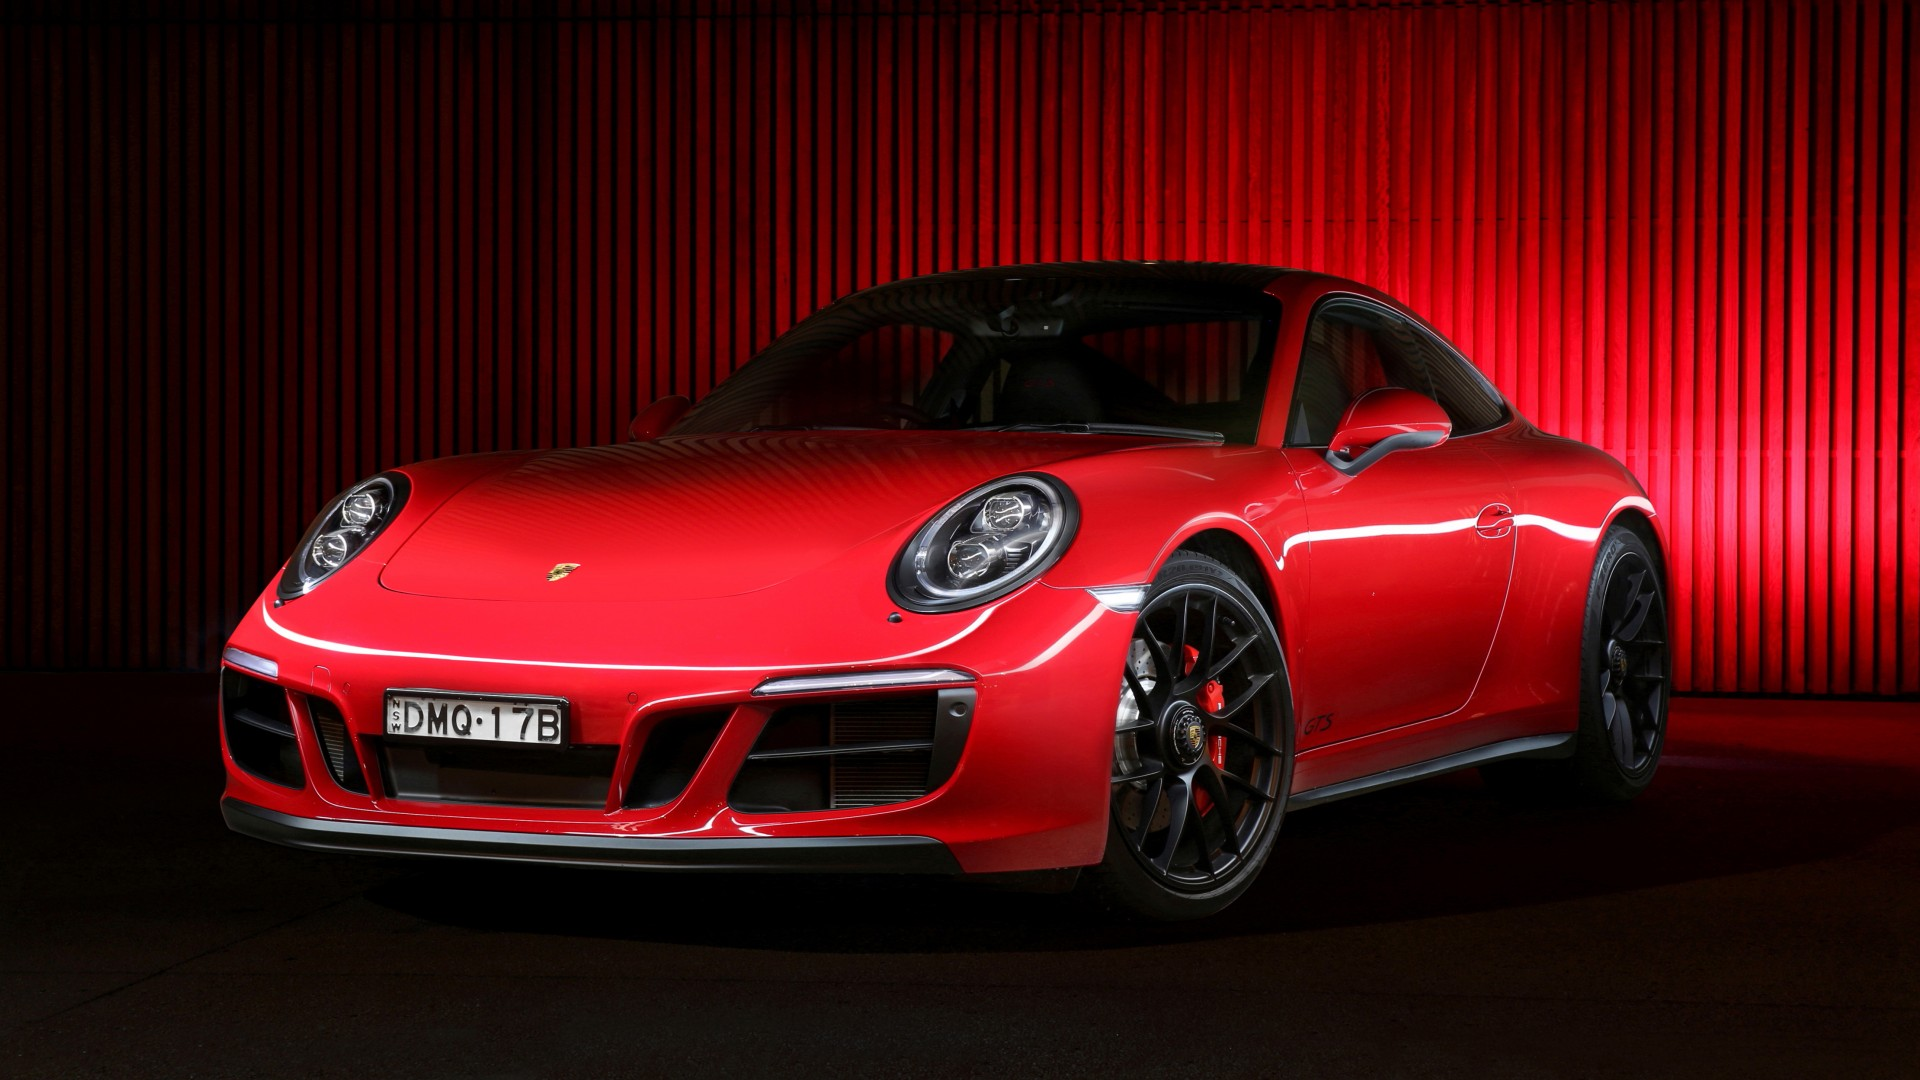 3d Wallpaper For Ipad 2017 Porsche 911 Carrera 4 Gts Coupe 4k Wallpapers Hd